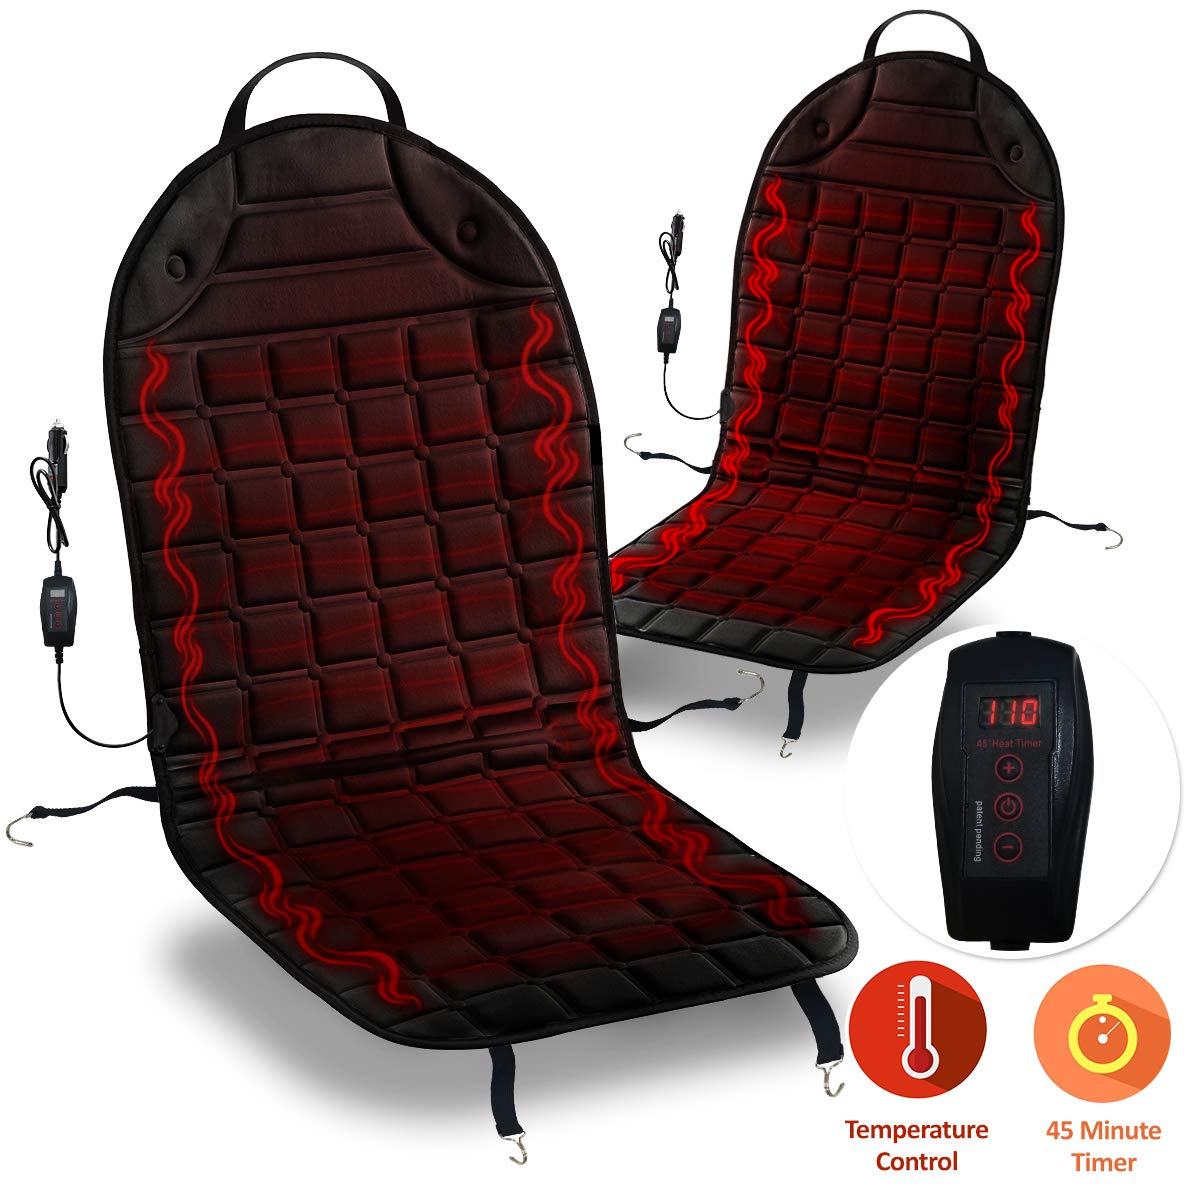 Zone Tech Car Heated Seat Cover Cushion Hot Warmer Image